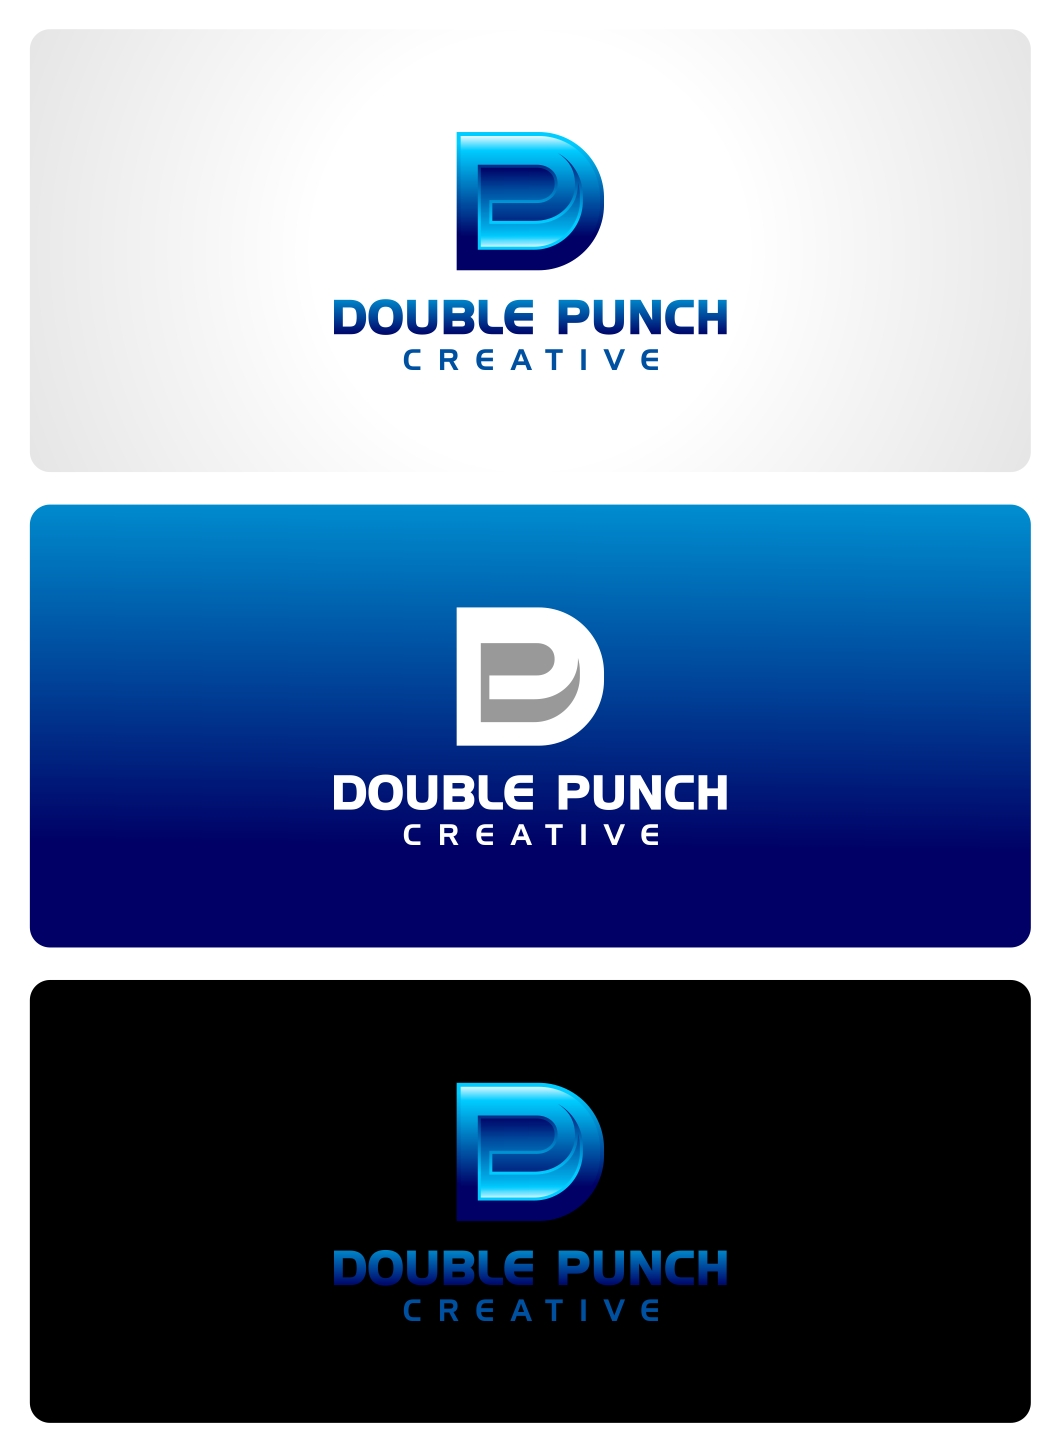 Logo Design by haidu - Entry No. 144 in the Logo Design Contest Unique Logo Design Wanted for Double Punch Creative.